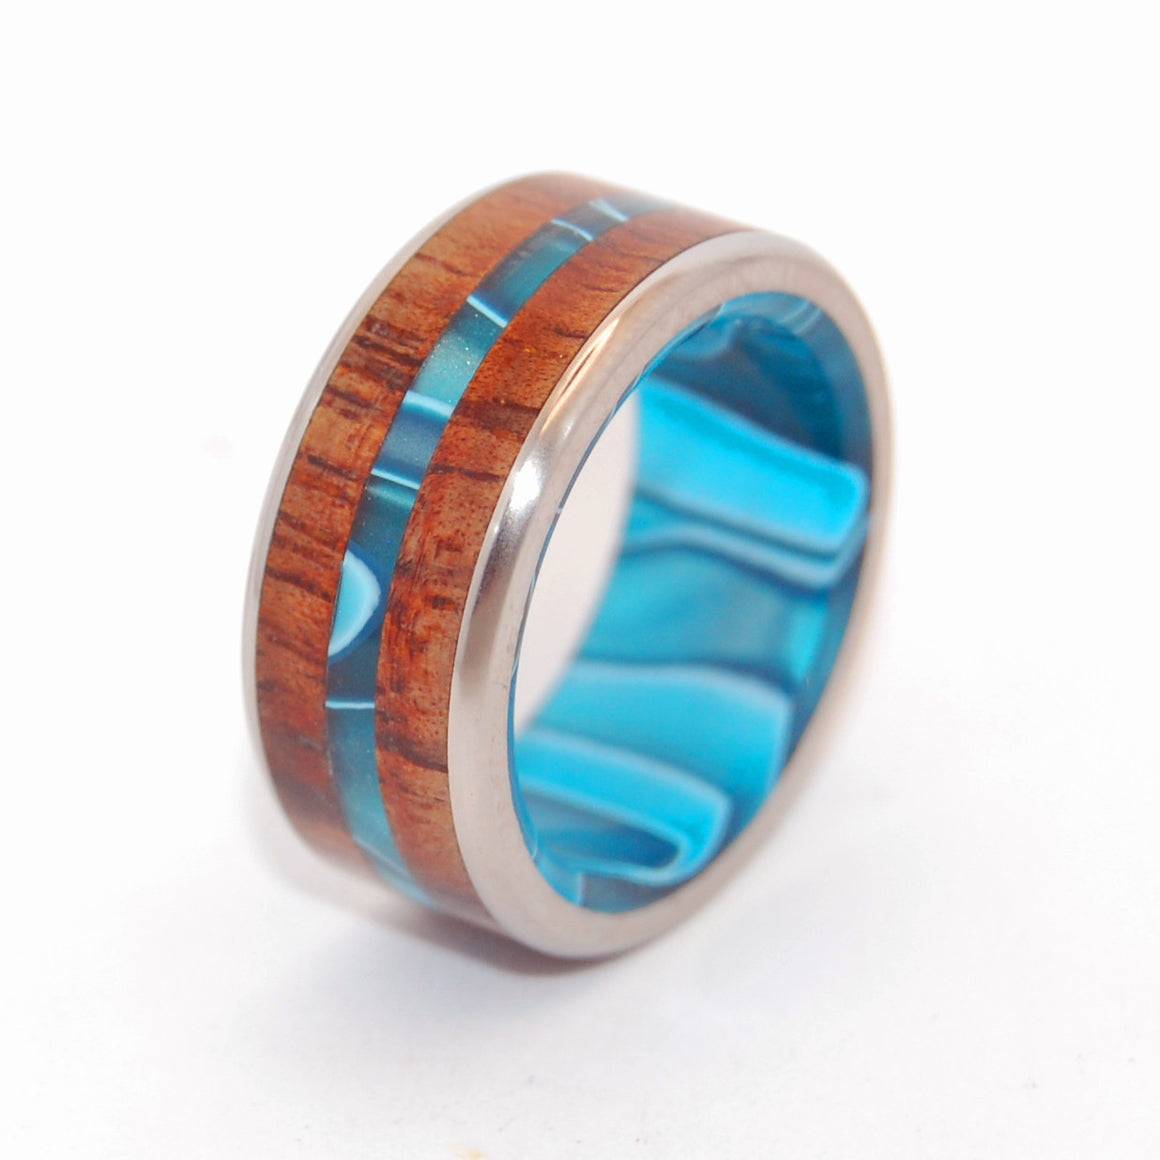 OUTRIGGER | Titanium and Hawaiian Koa Wood Custom Wedding Rings - Minter and Richter Designs